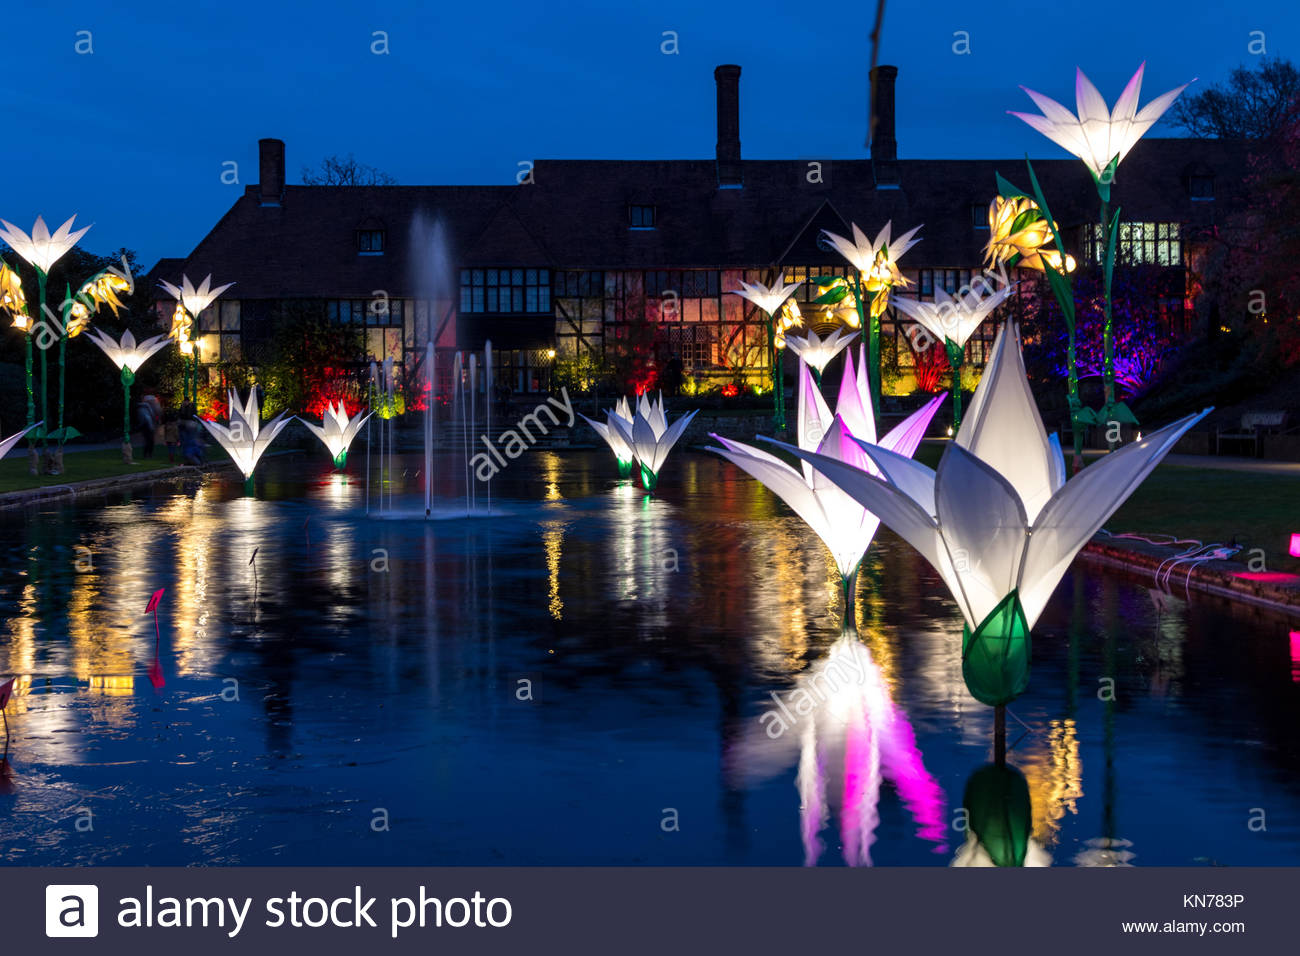 Christmas Glow At Rhs Wisley The Garden Is Staying Open Late Over Stock Photo Alamy